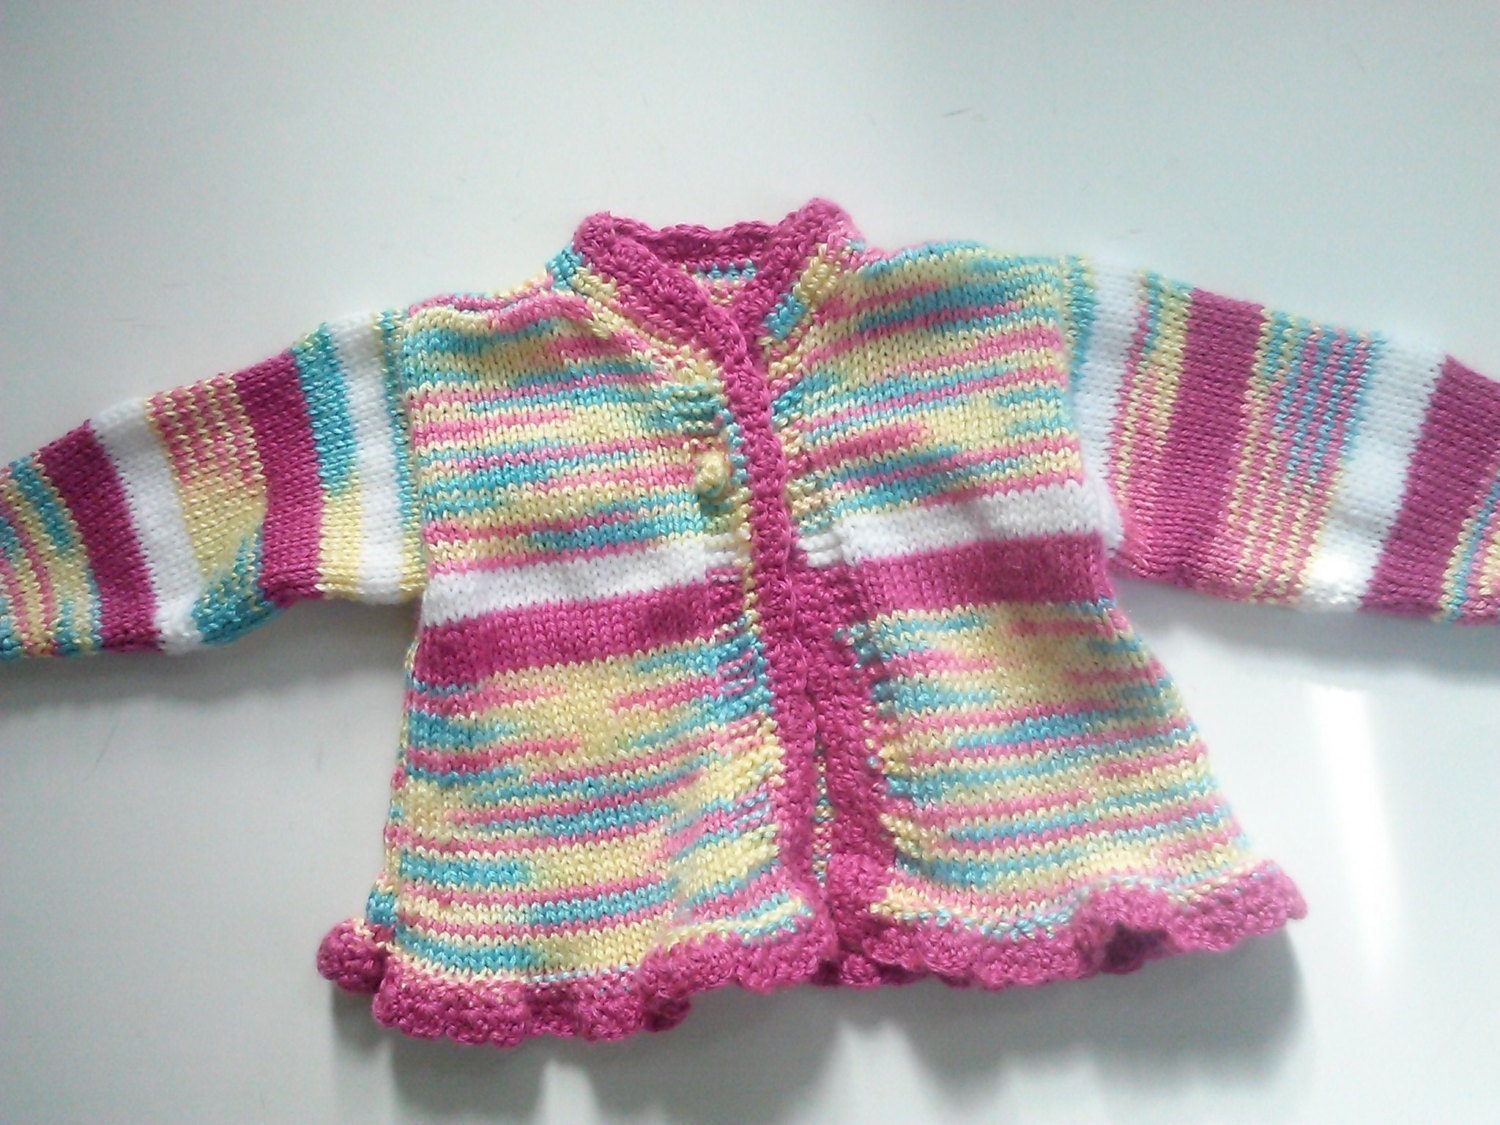 Knitting Baby Sweater Measurements : Vintage spring knit baby sweater size t handmade